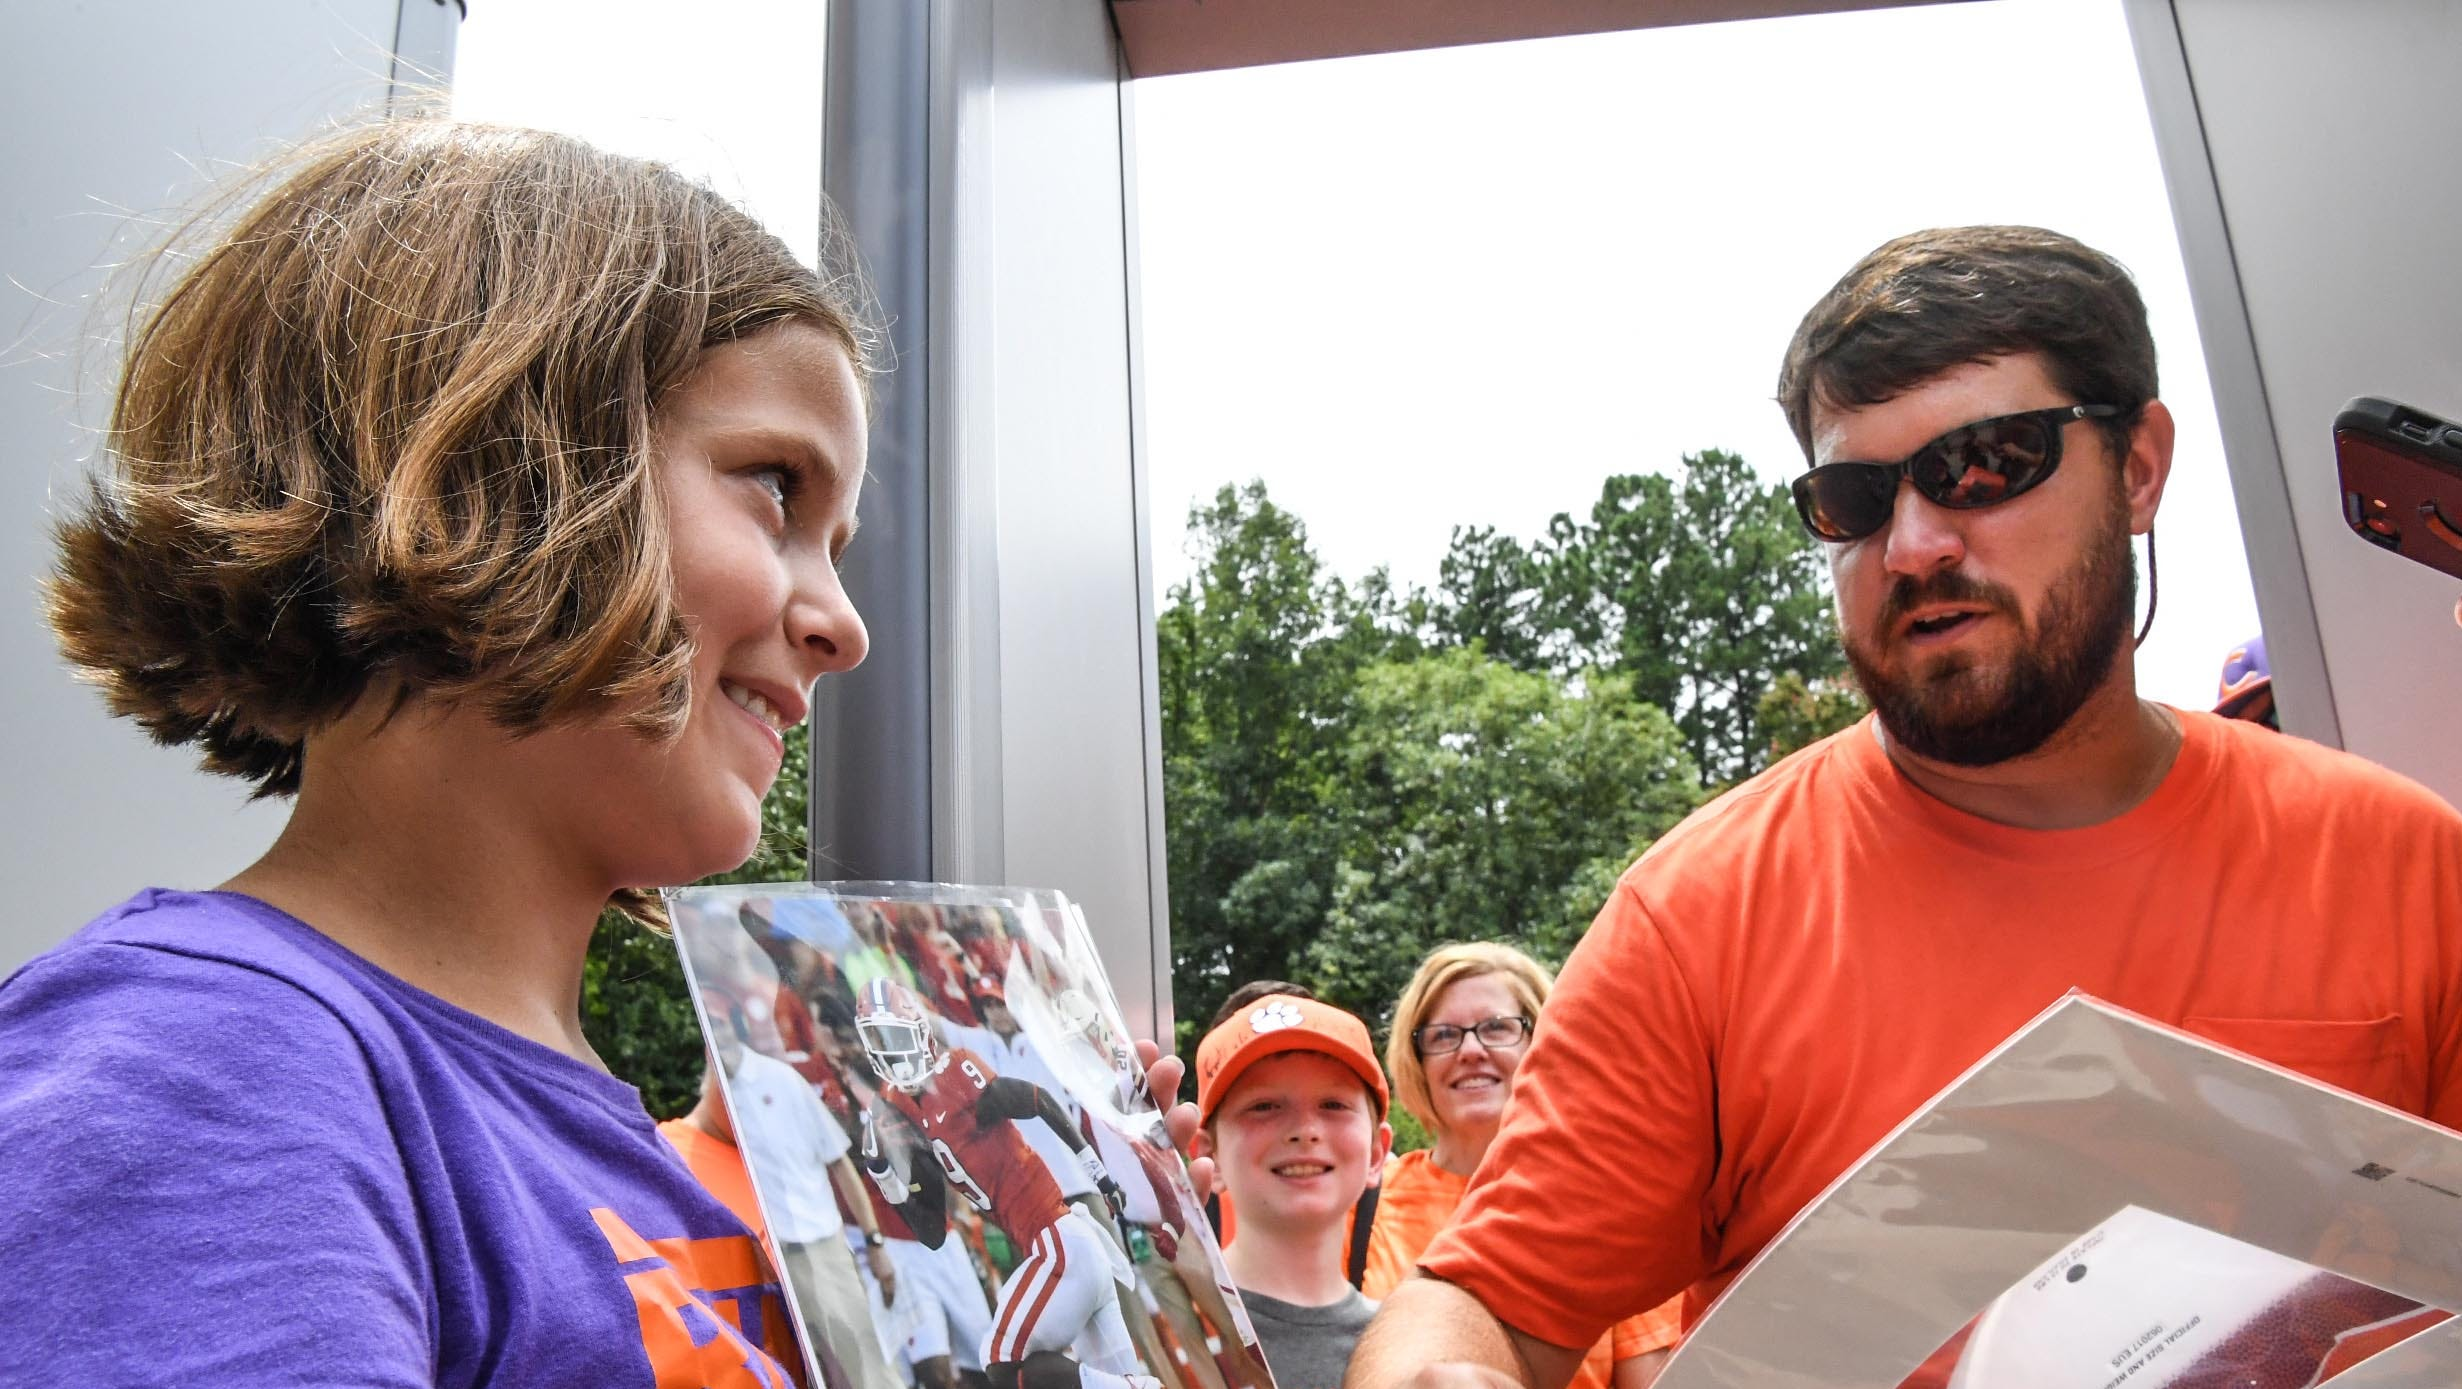 clemson chat Talk to clemson beat writer aaron brenner about the tigers upcoming game vs south carolina state.